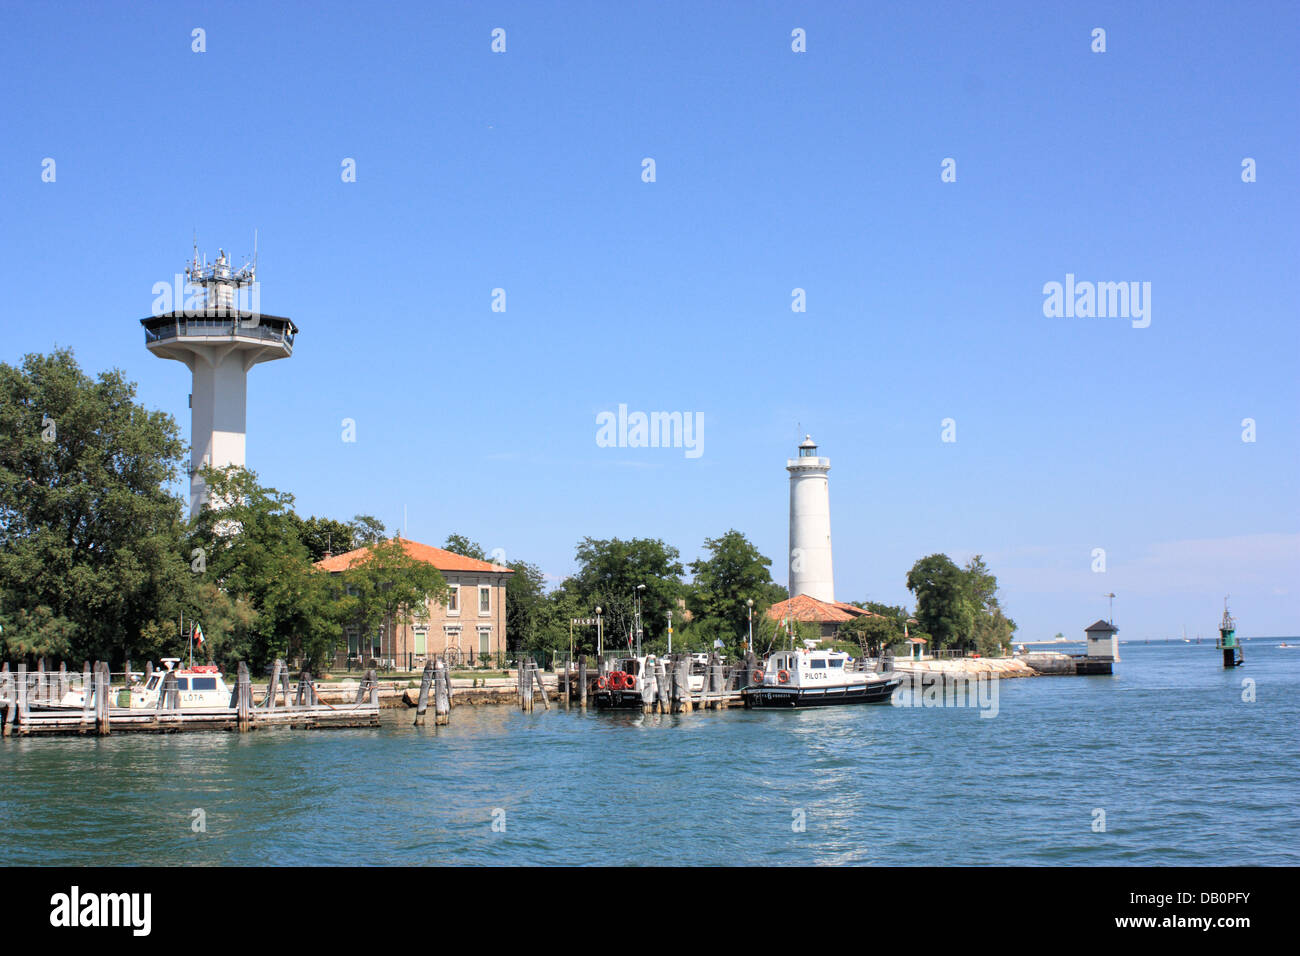 Lighthouse at Malamocco canal between Lido and Pellestrina Island - Stock Image